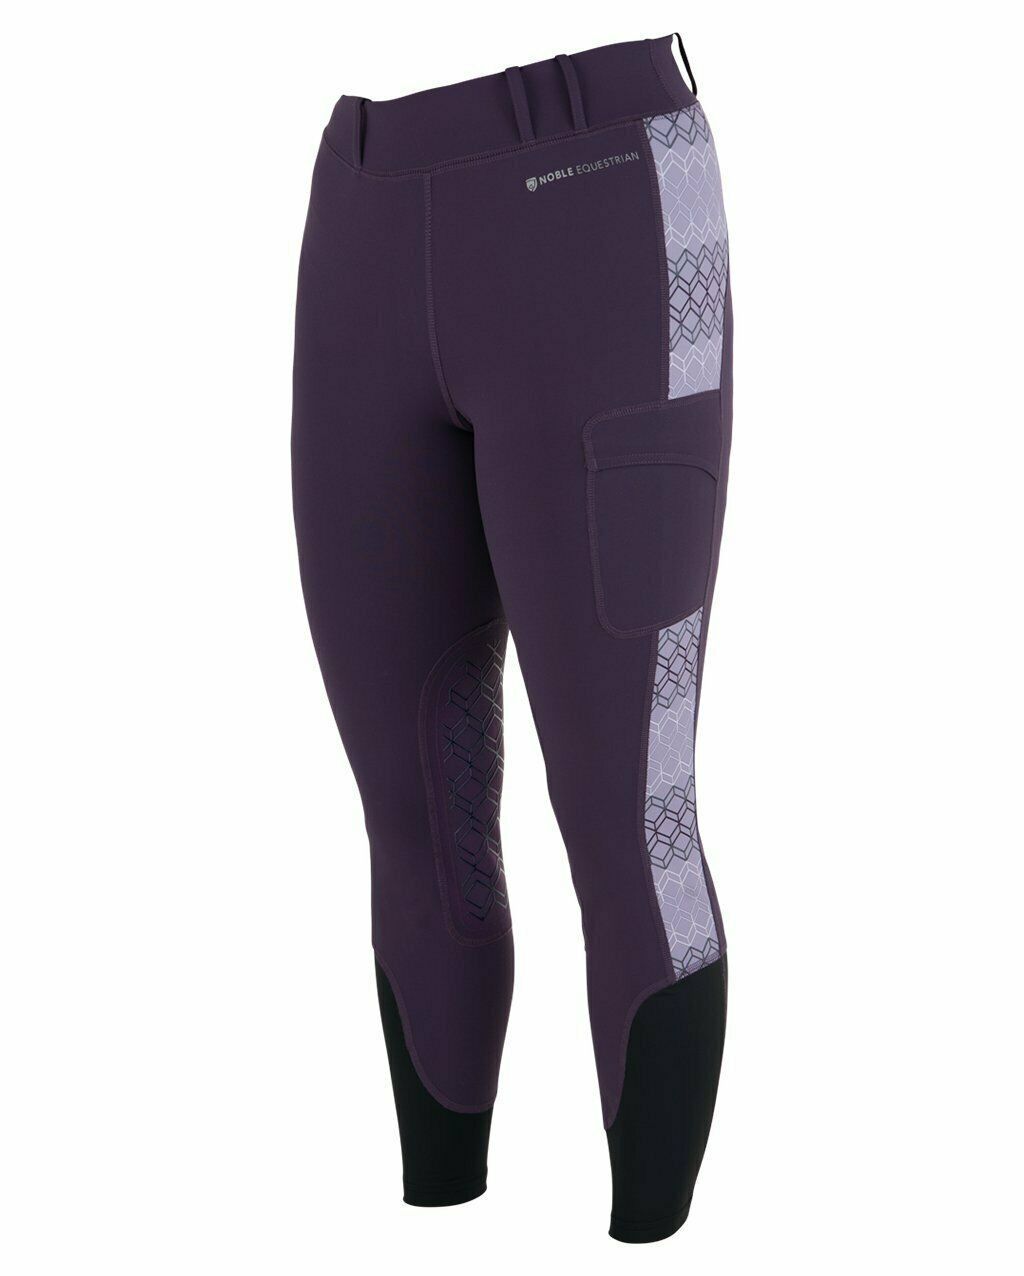 Noble Equestrian Ladies Printed Balance Riding Tight